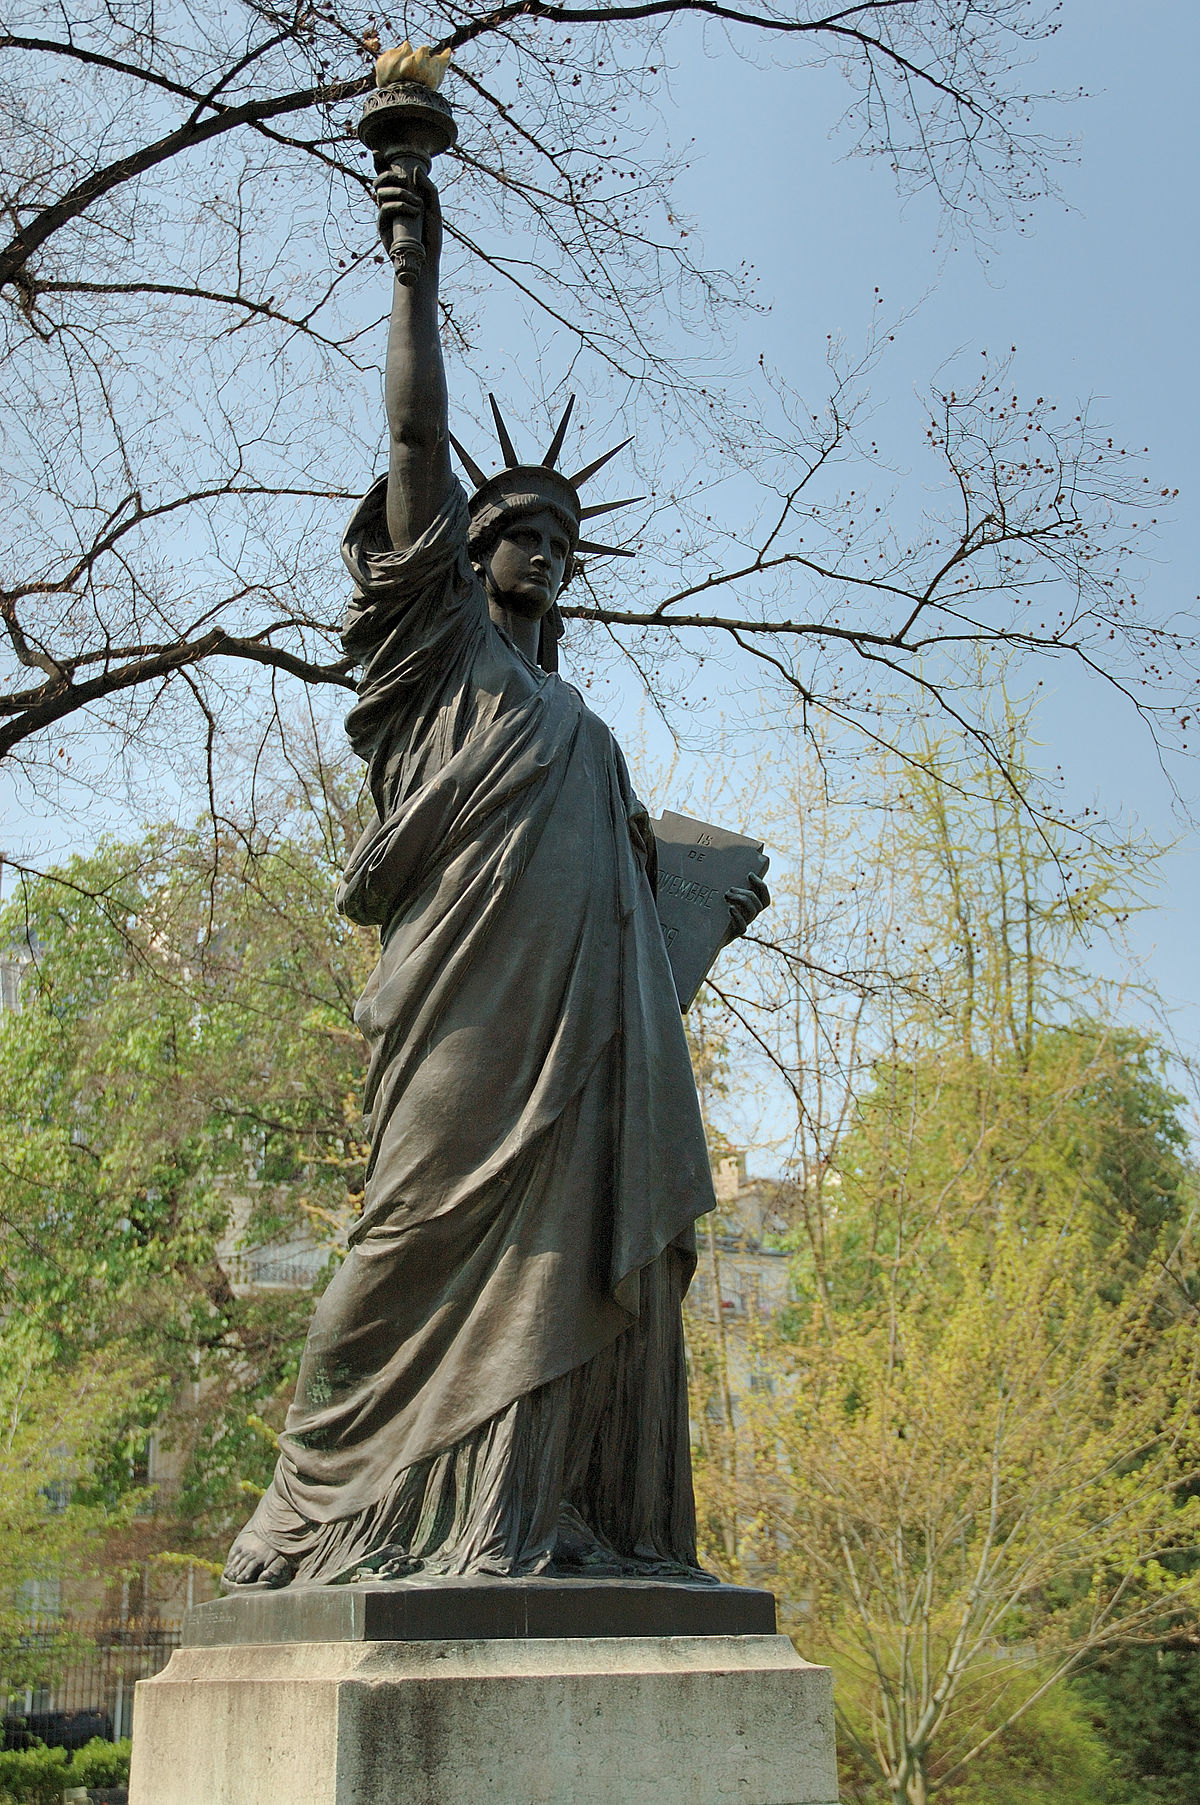 Replicas of the Statue of Liberty - Wikipedia